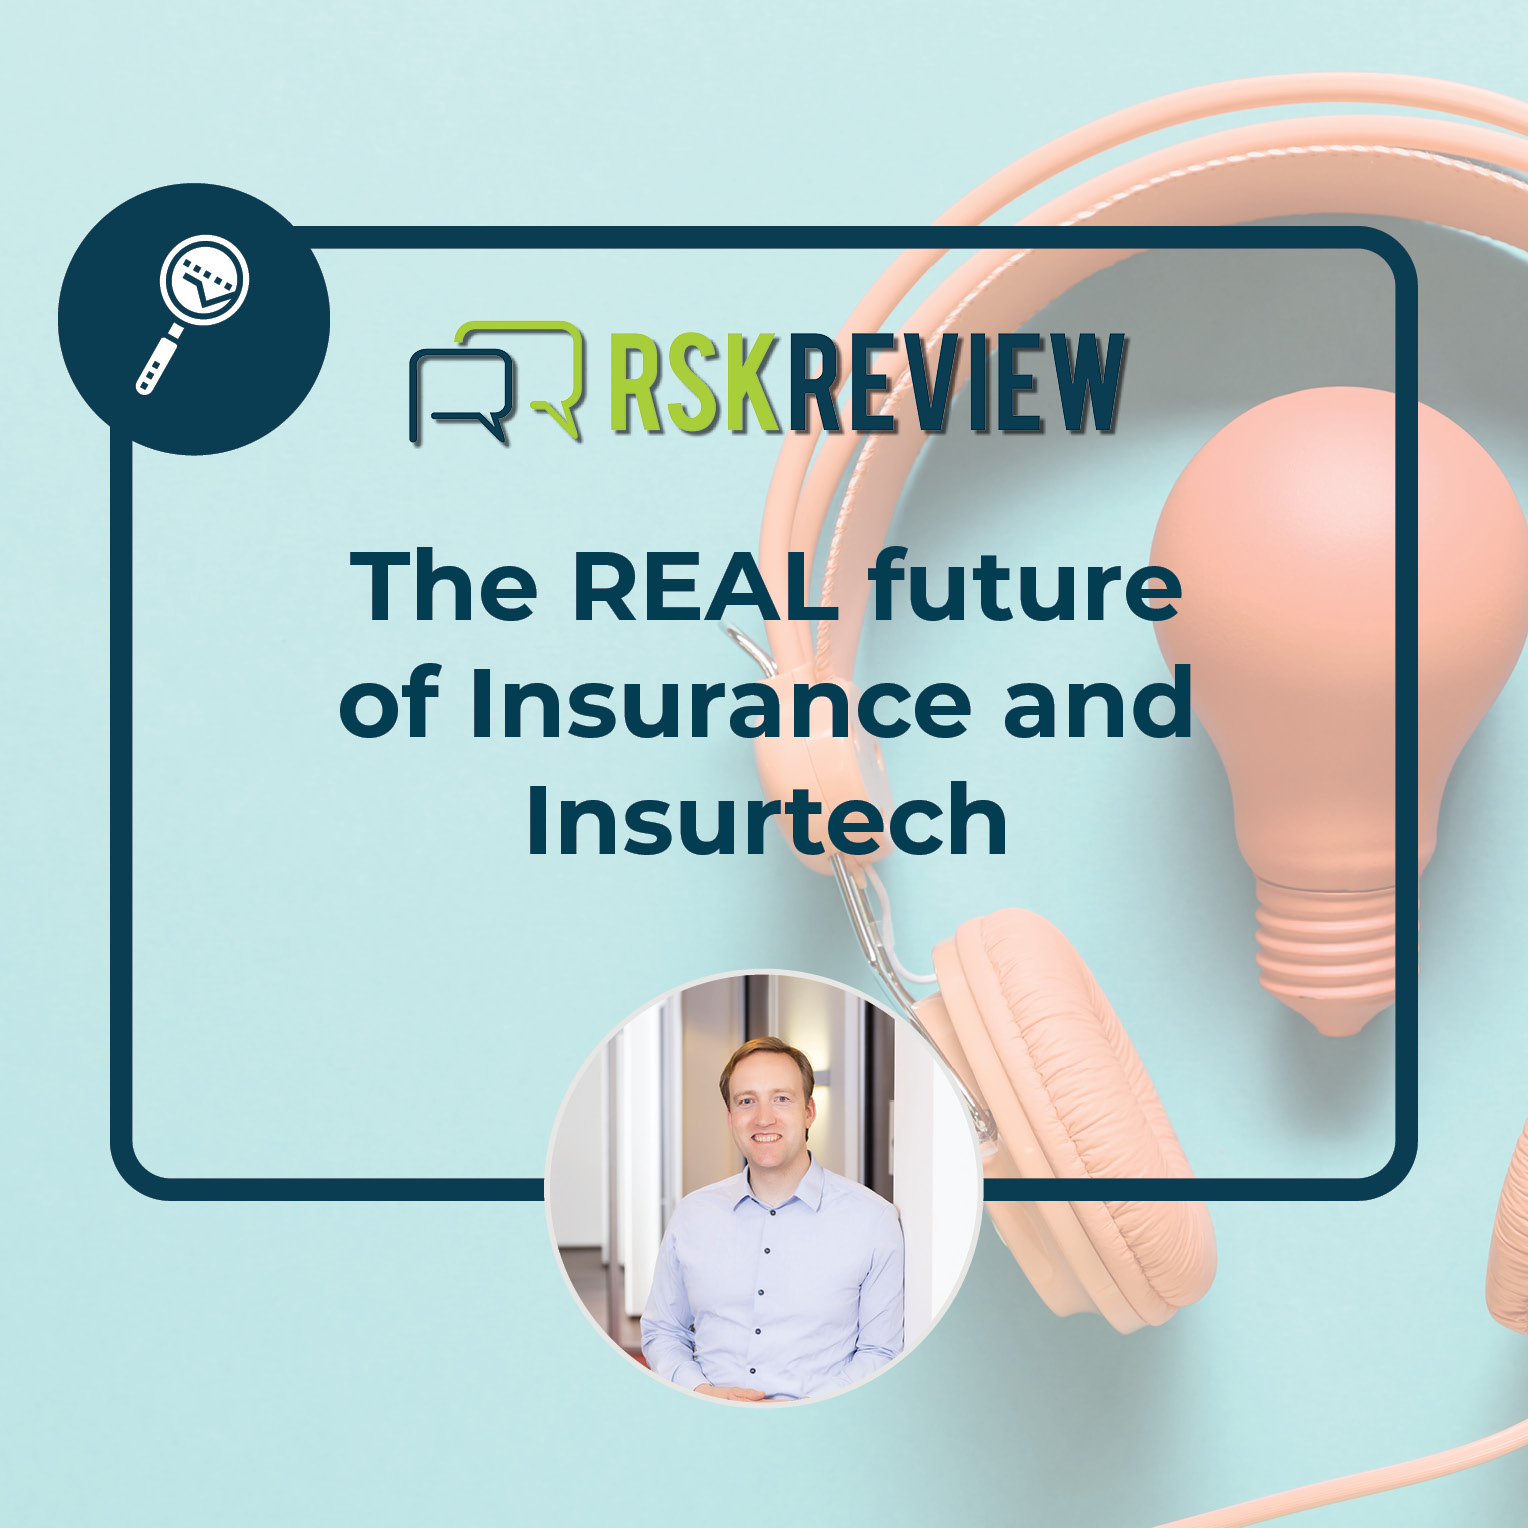 The real future of insurance and insuretech